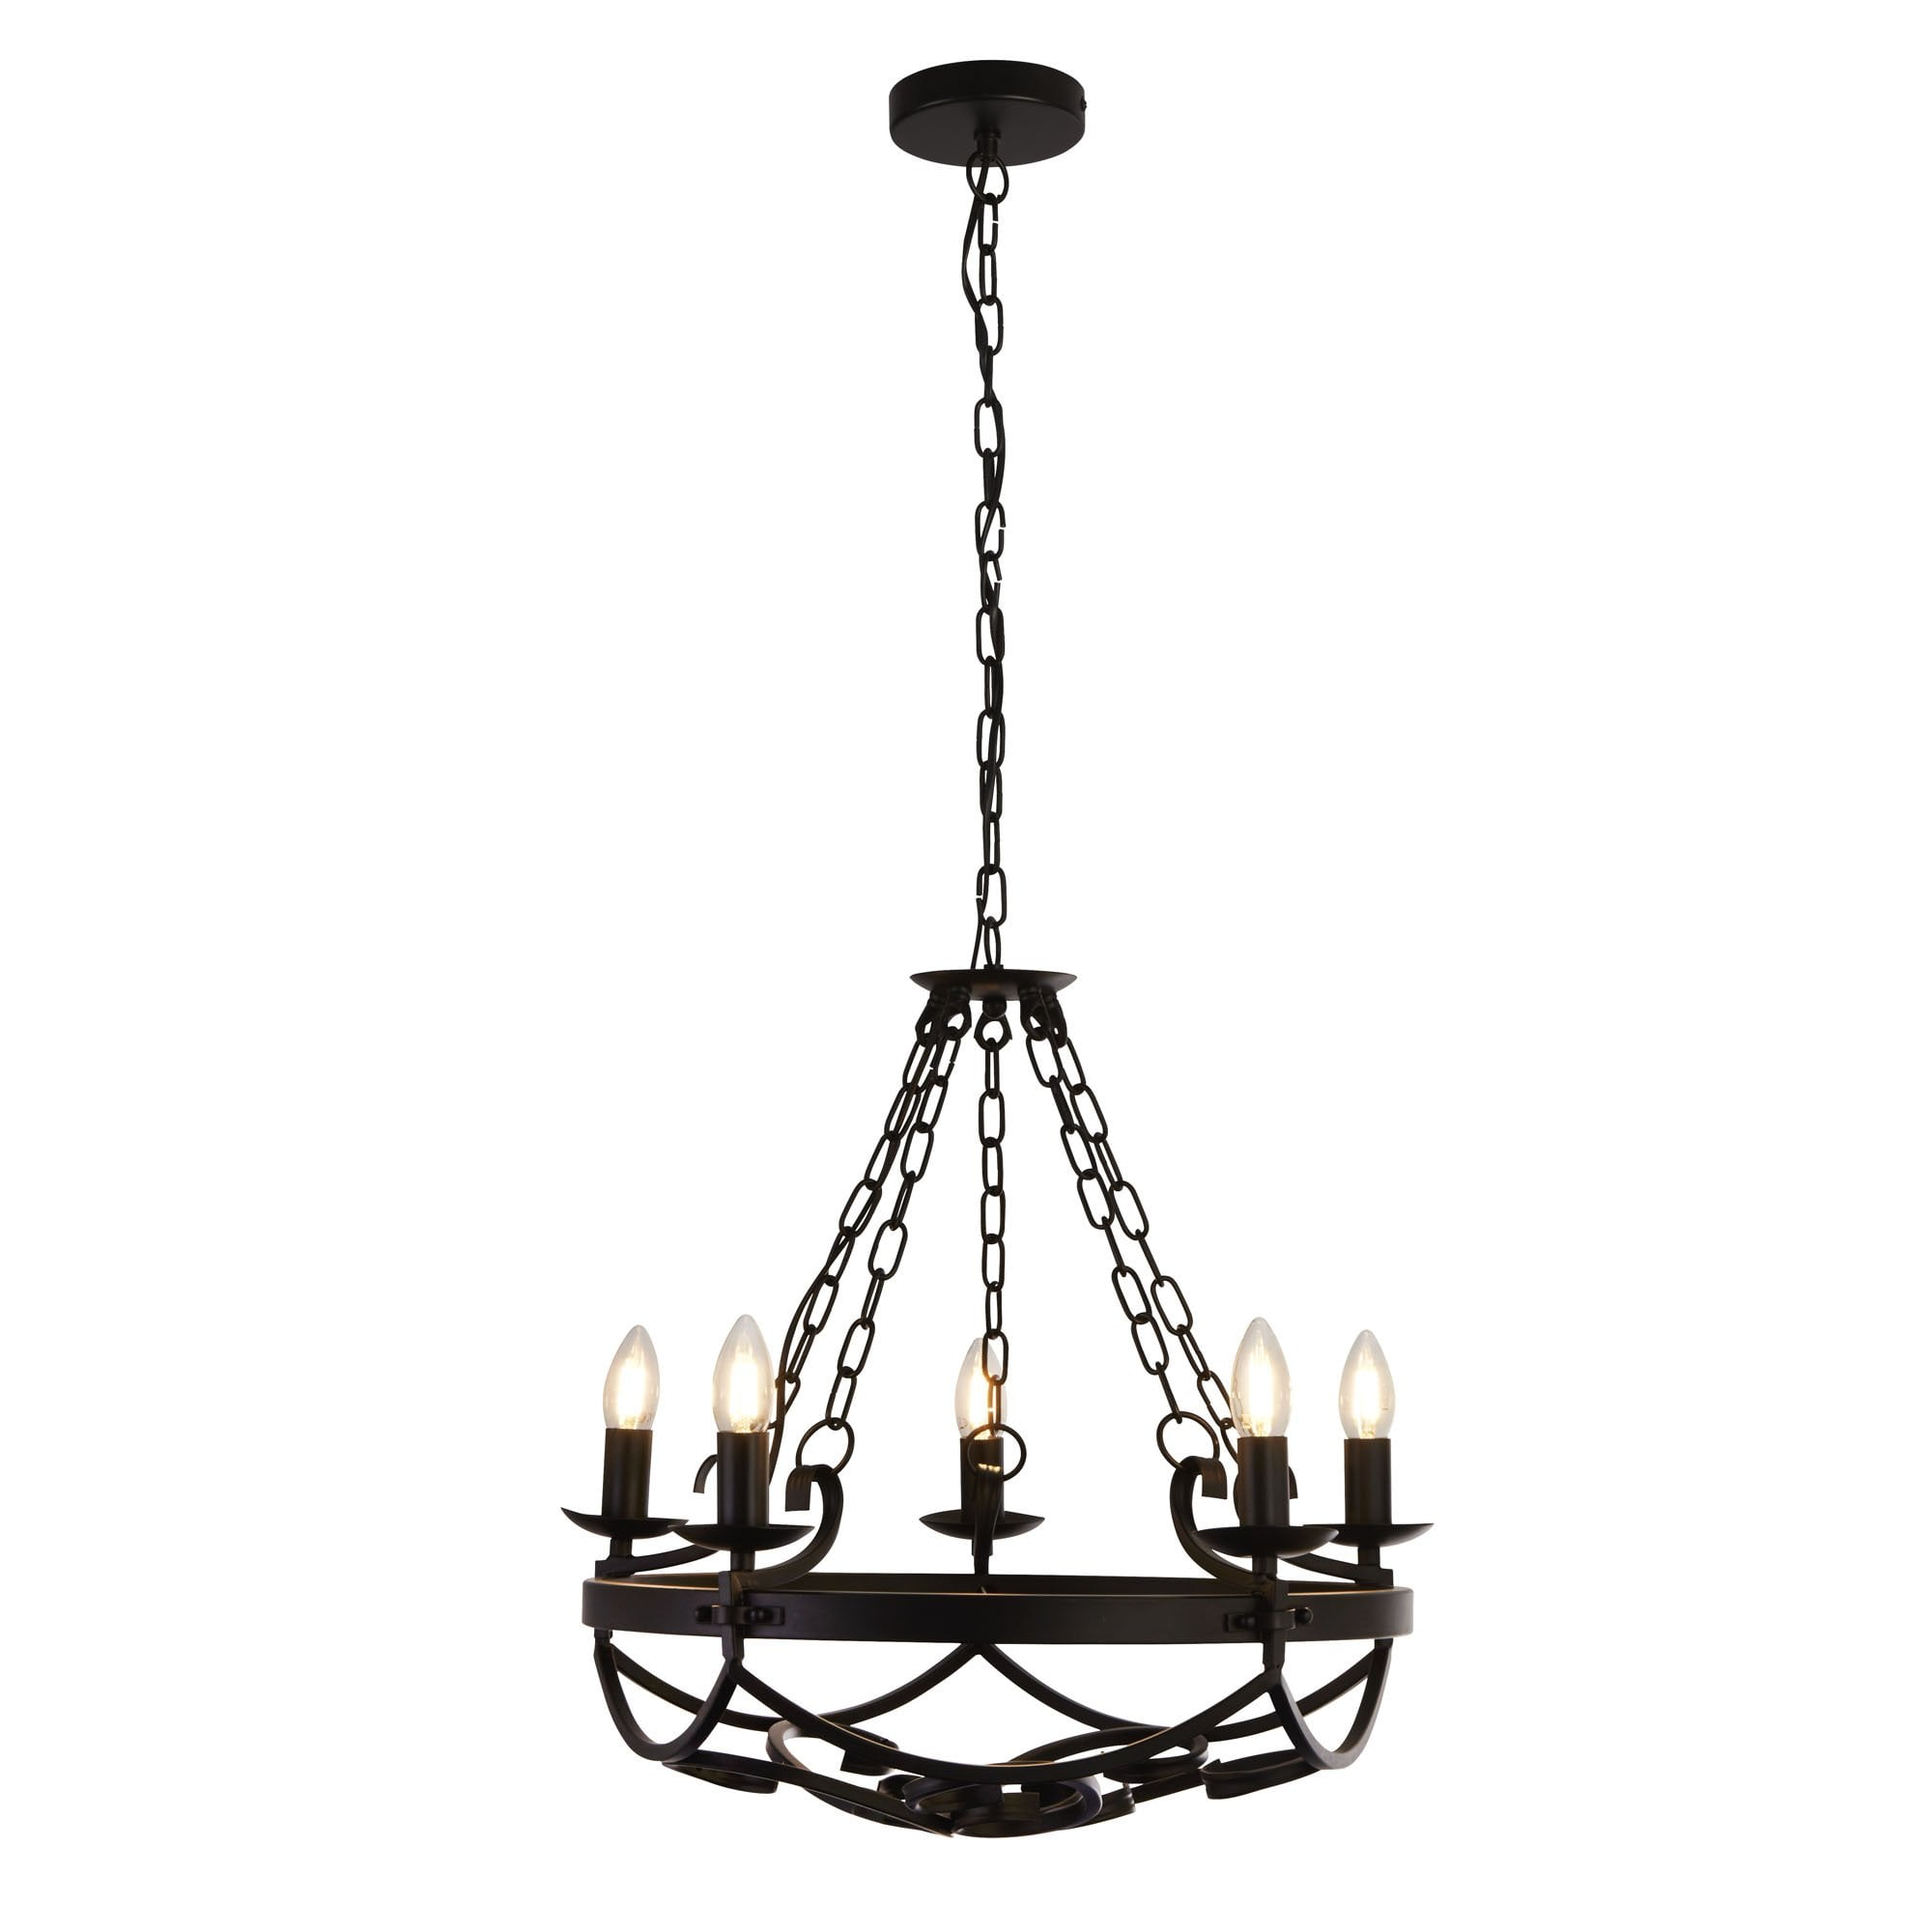 5 Light Wrought Iron Chandelier Medieval And Gothic Ceiling Pendant